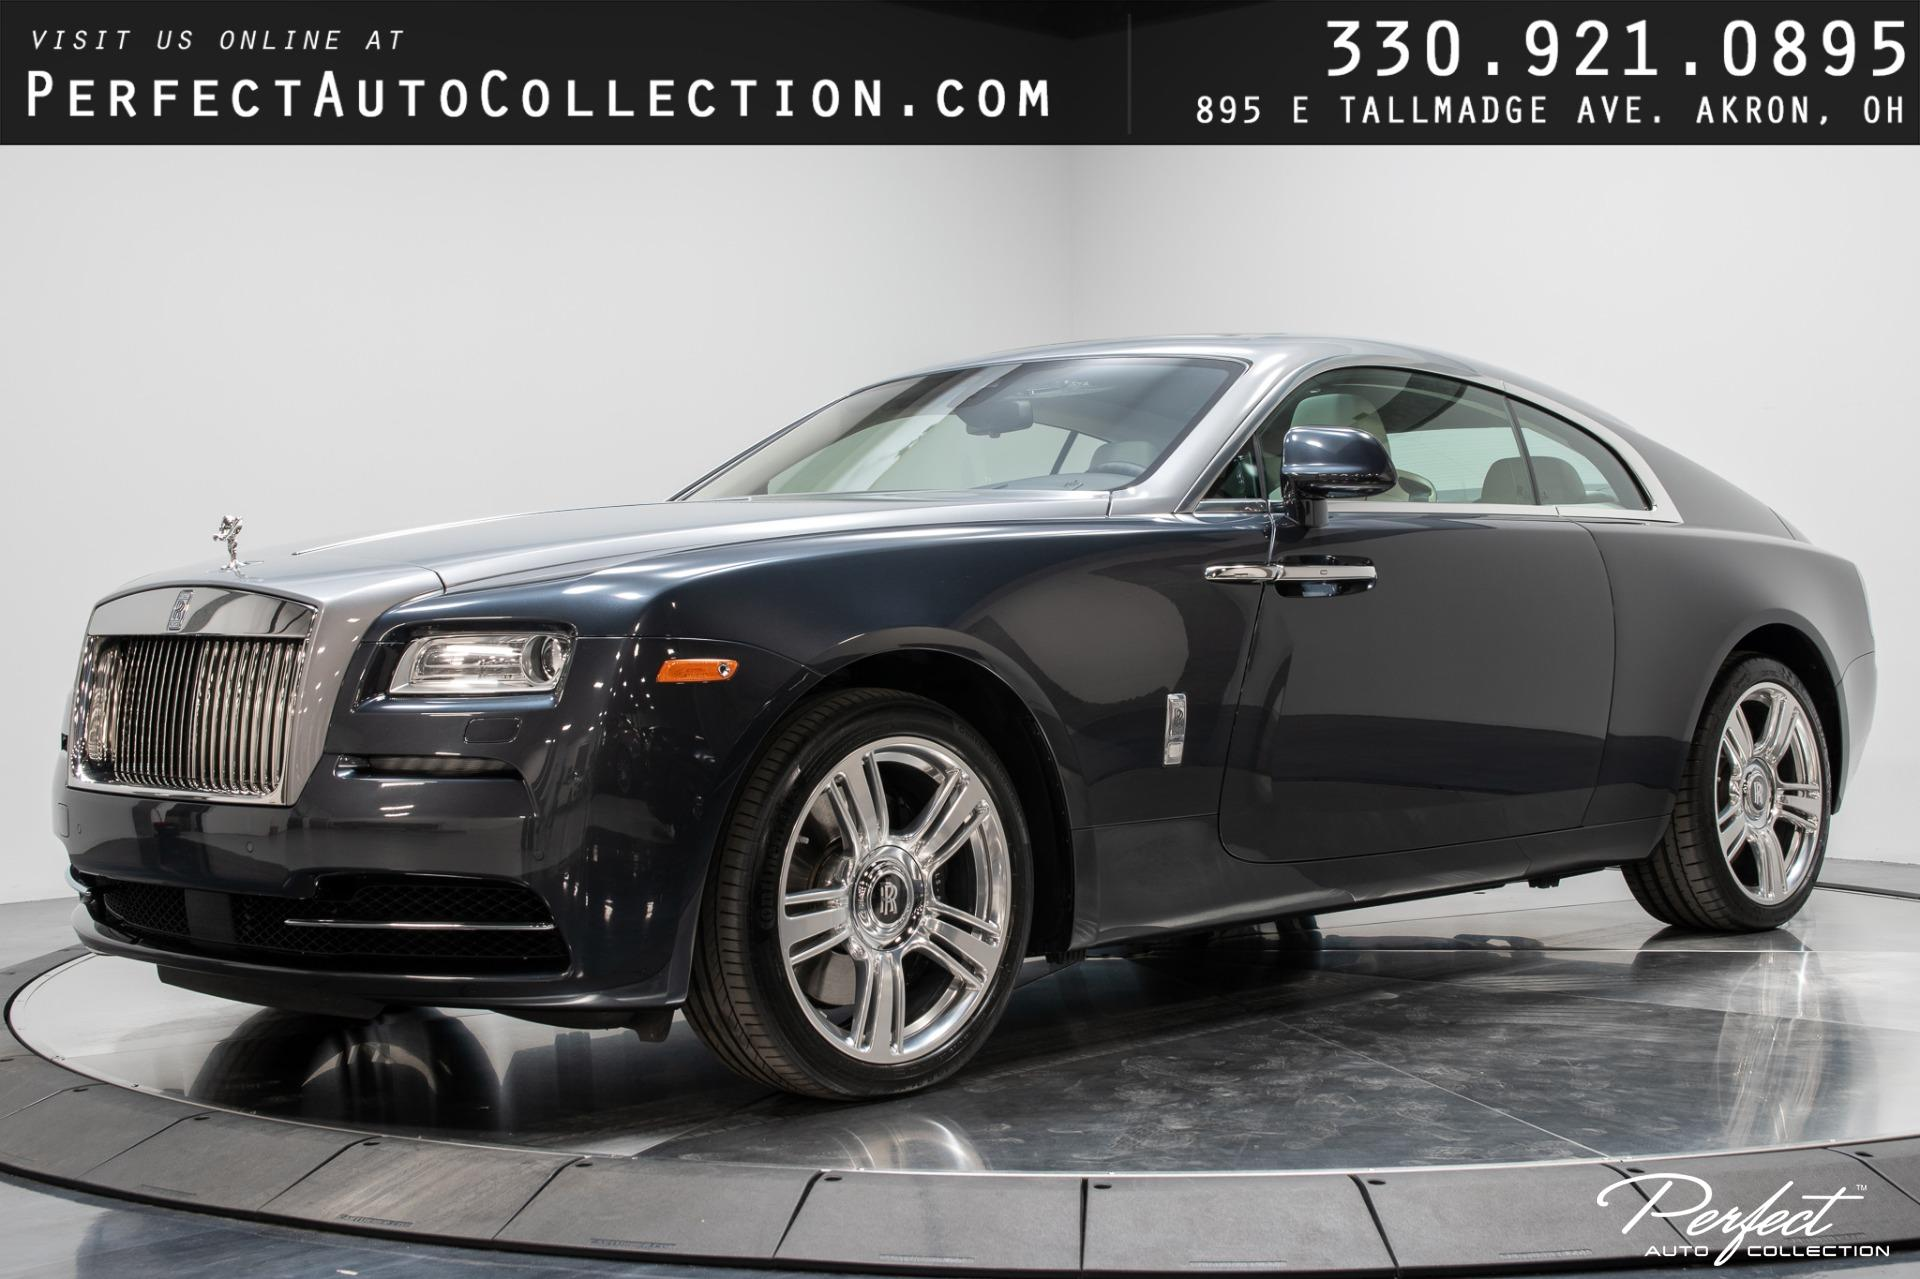 Used 2015 Rolls-Royce Wraith for sale $179,493 at Perfect Auto Collection in Akron OH 44310 1